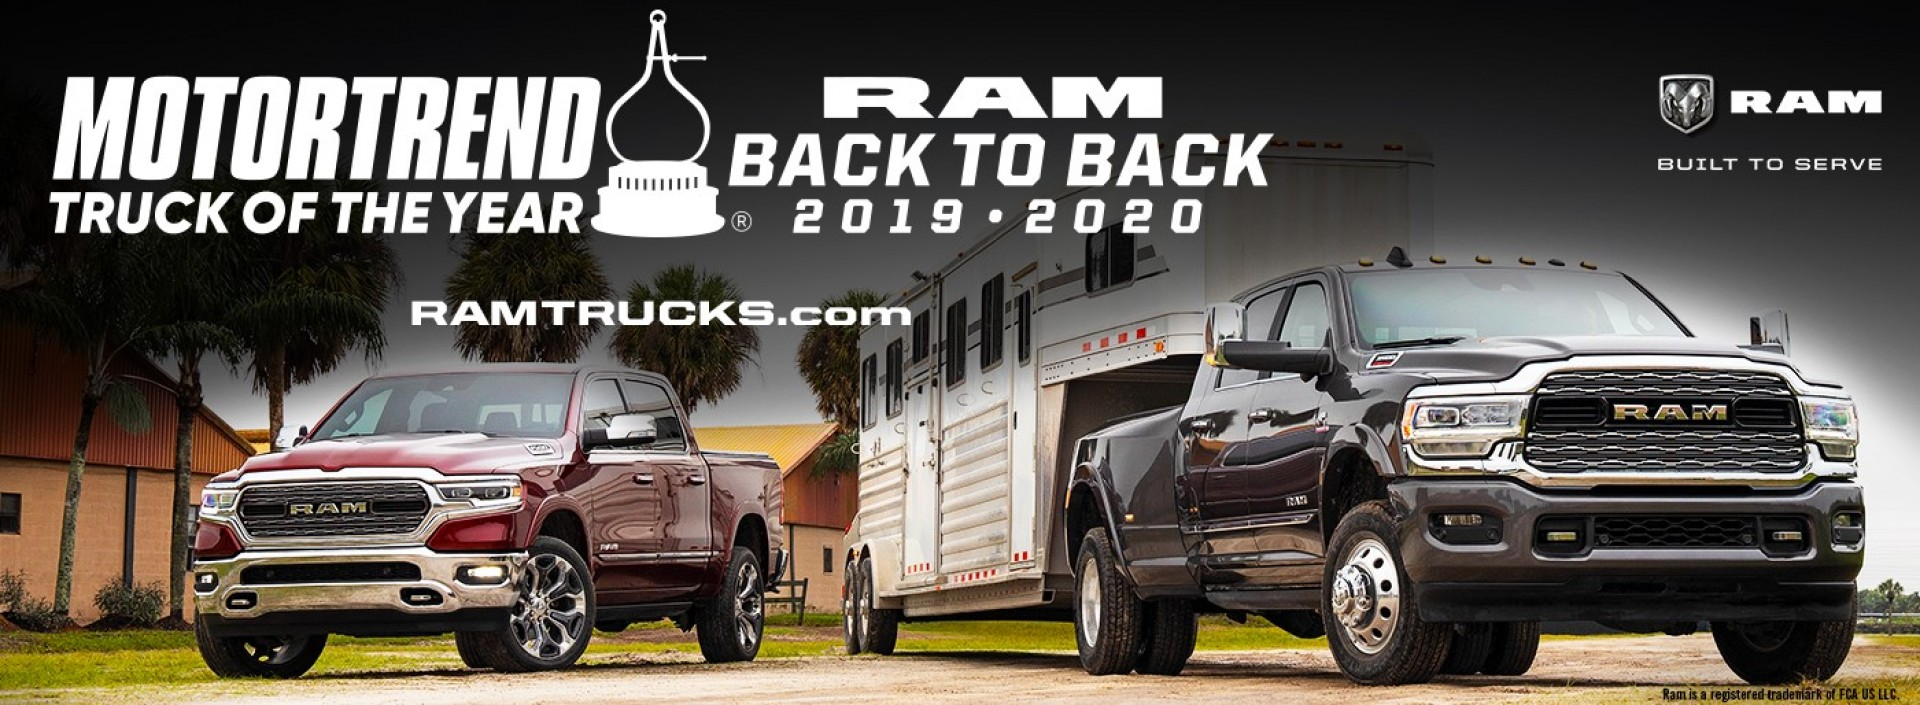 MotorTrend ram Back to back truck of the year 2019 2020